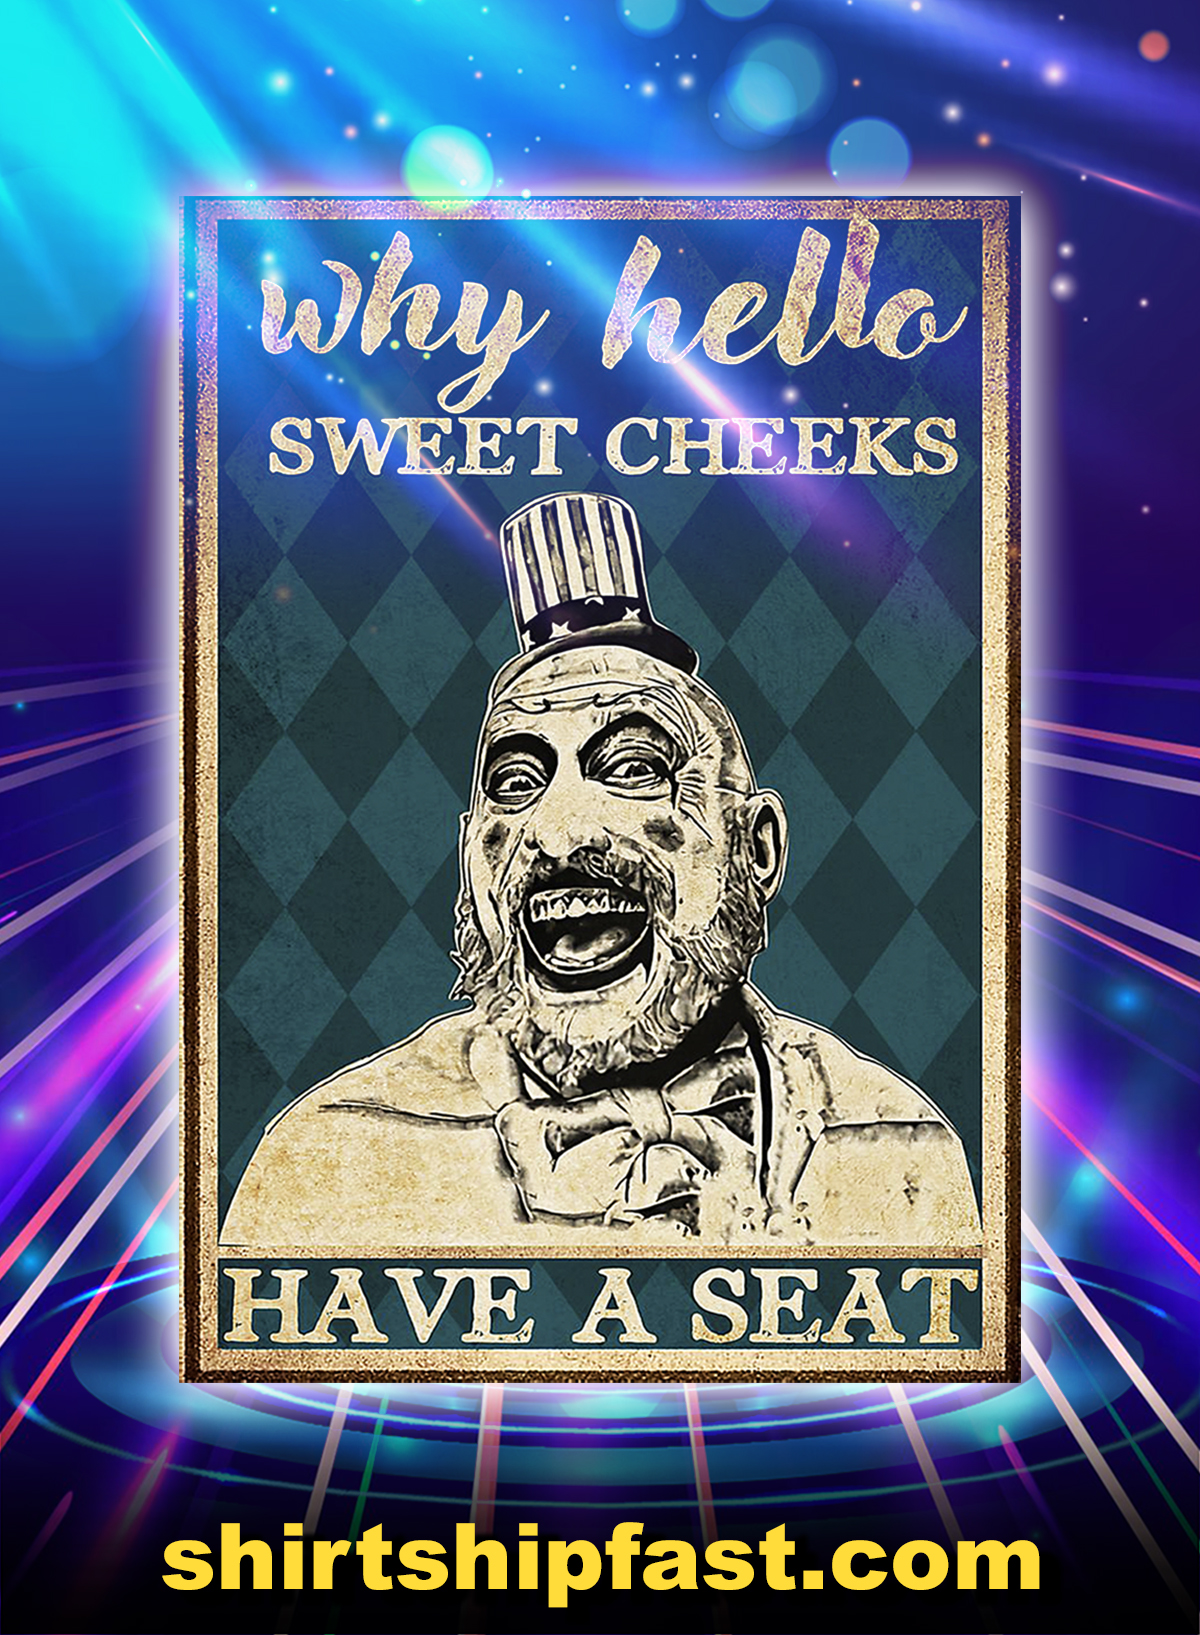 Why hello sweet cheeks have a seat captain spaulding poster - A1